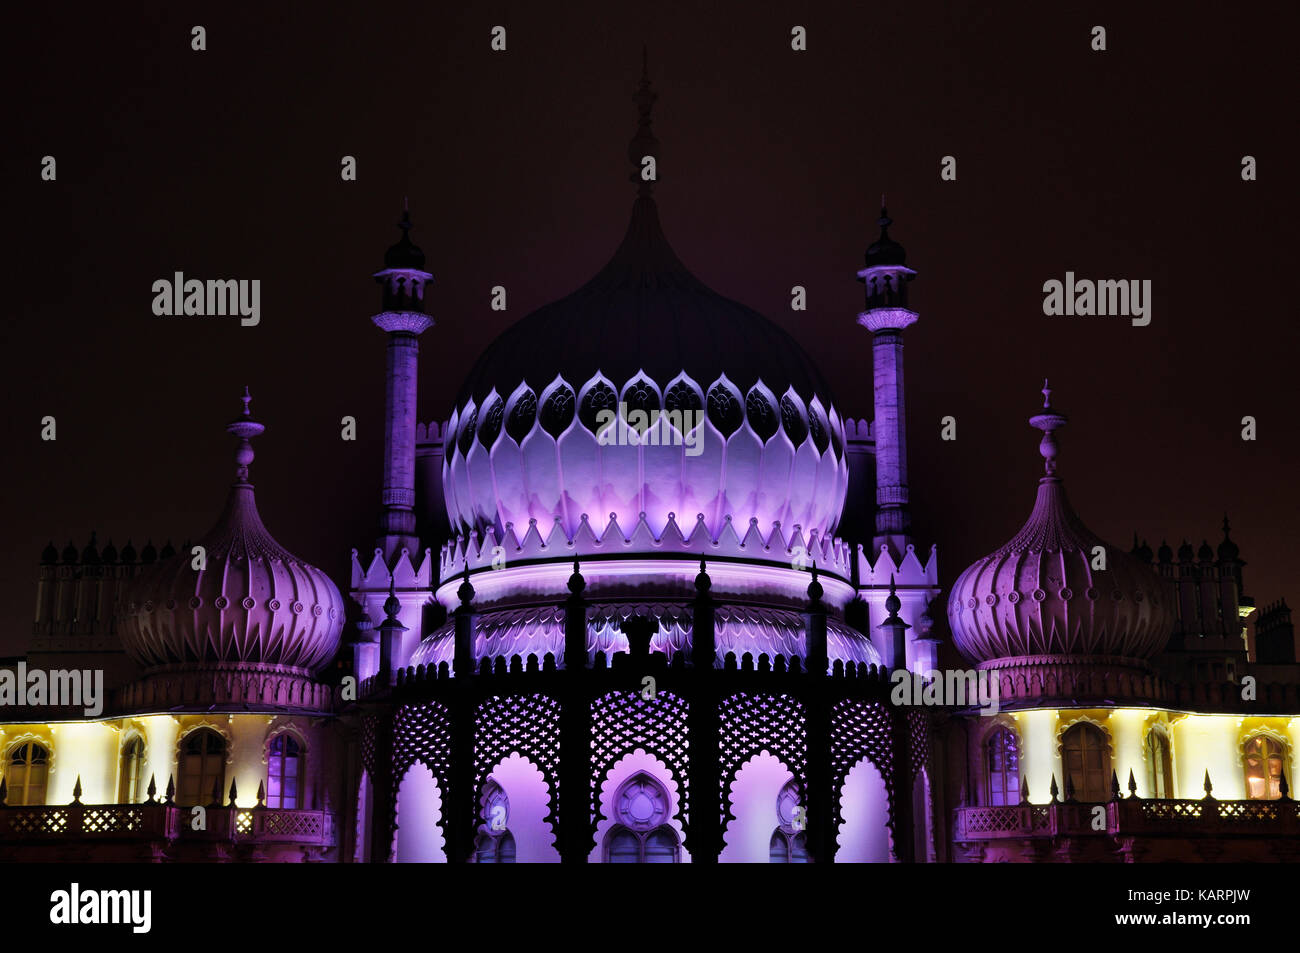 Brighton Royal Pavilion at night, East Sussex, England, UK - Stock Image